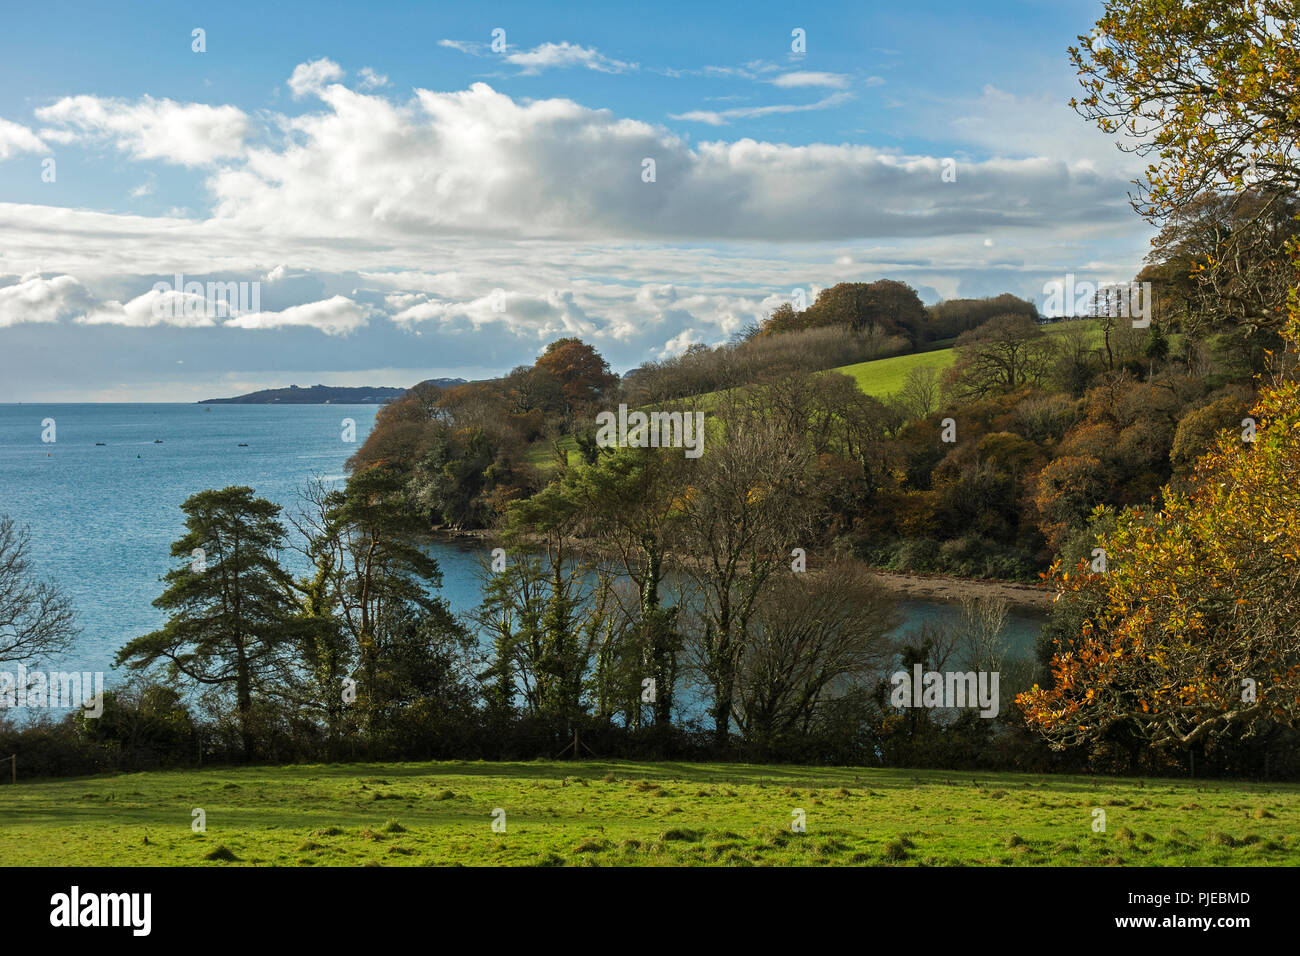 View Of Carrick Roads And River Fal Near Truro In Cornwall, England, Britain, Uk. Stock Photo